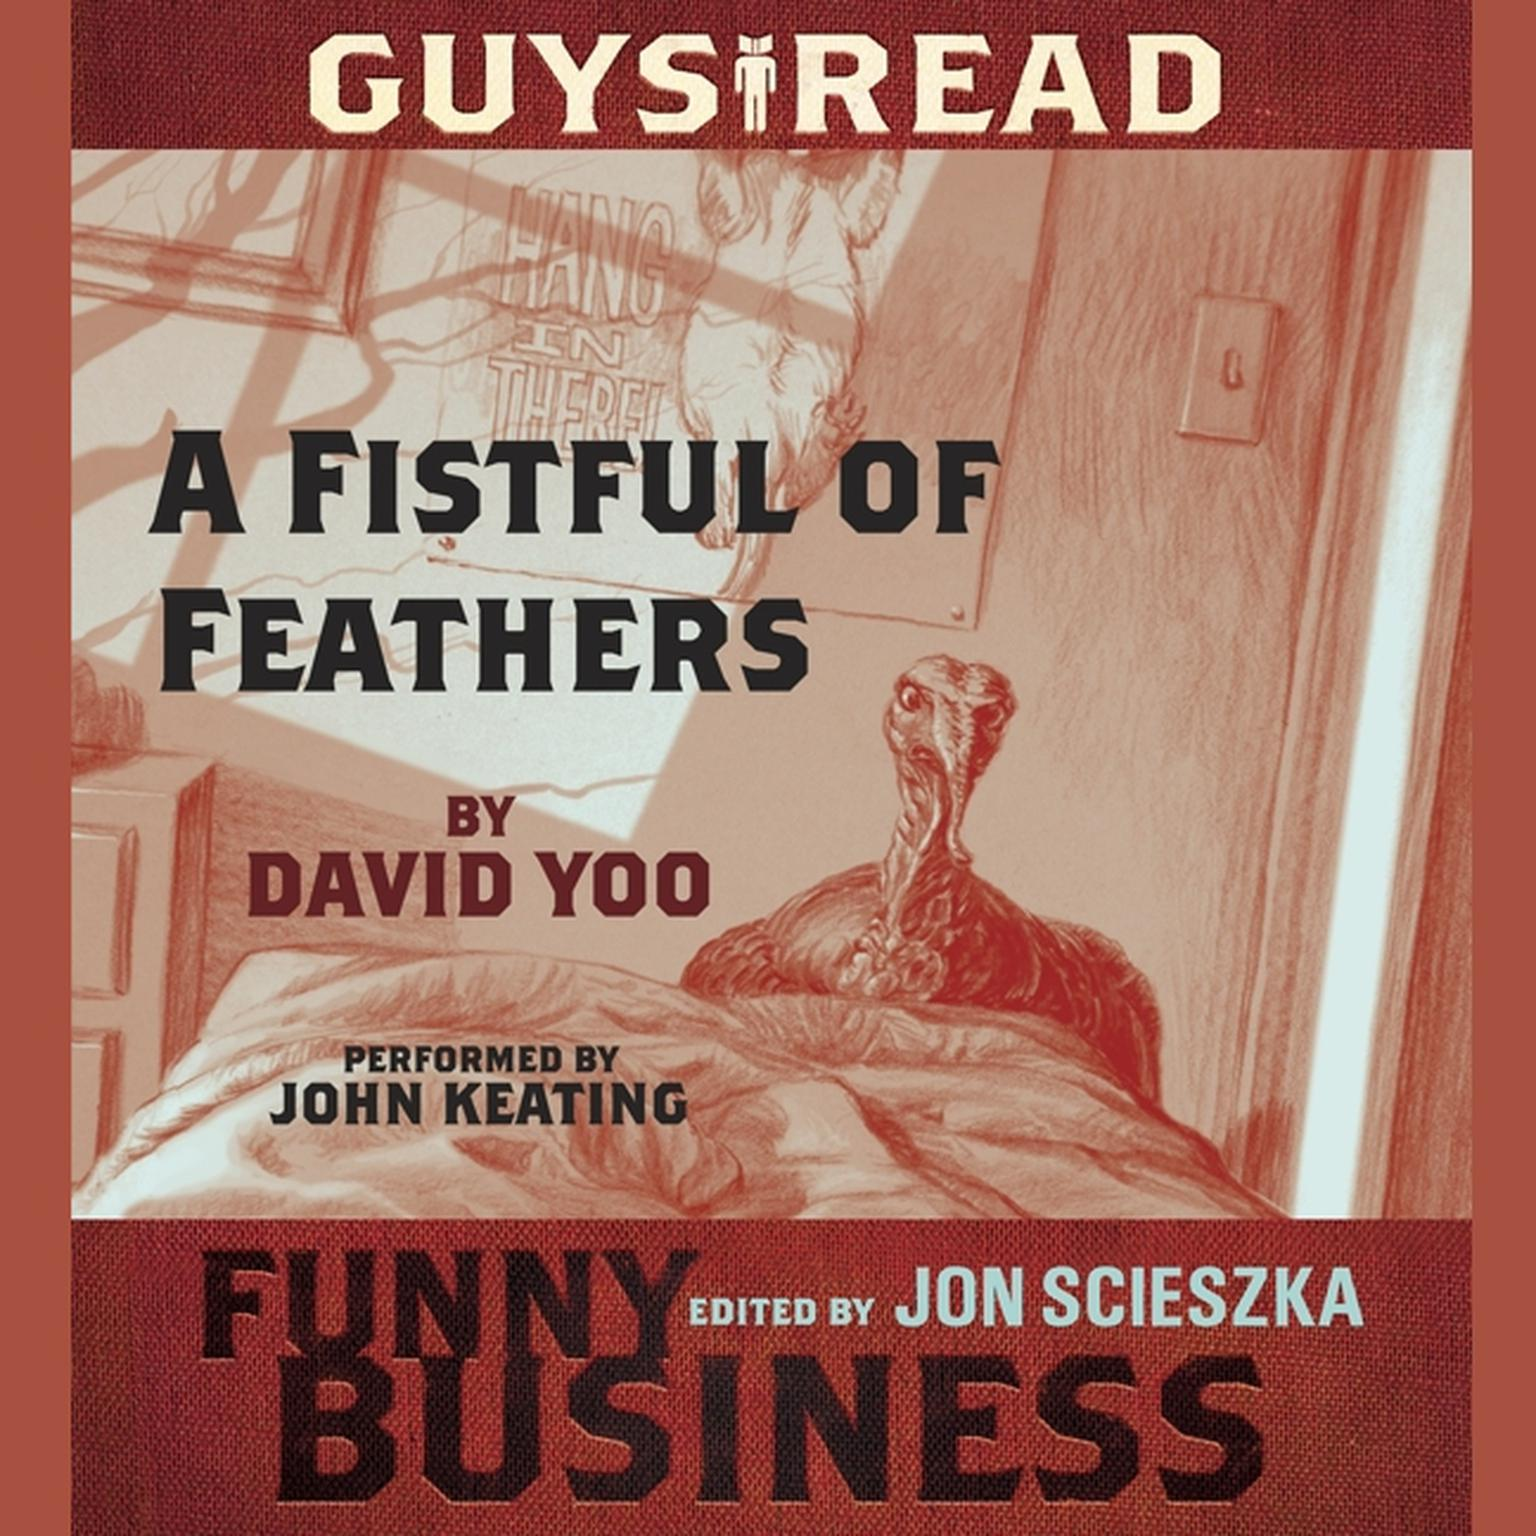 Printable Guys Read: A Fistful of Feathers: A Story from Guys Read: Funny Business Audiobook Cover Art